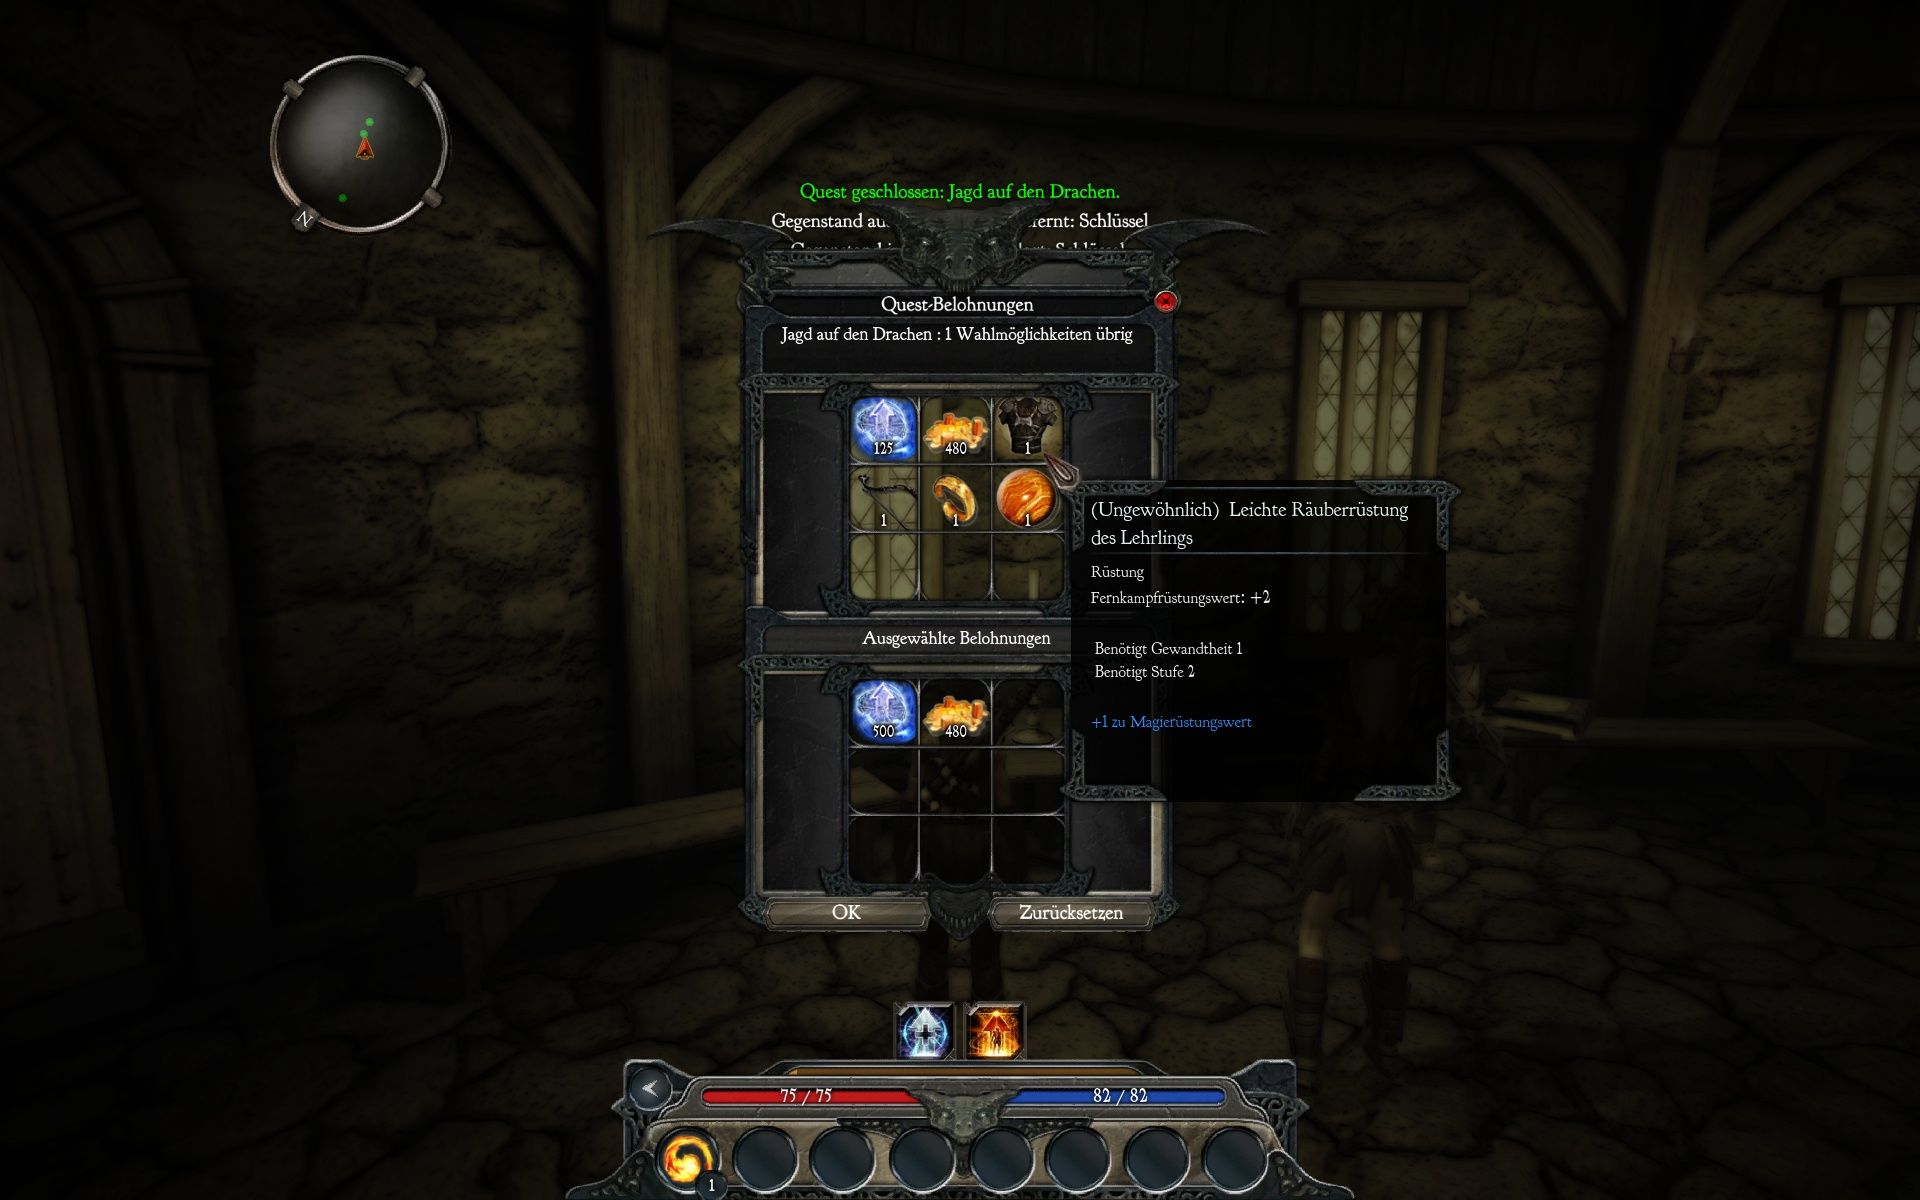 Divinity II: Ego Draconis Windows At the end of each quest you can choose between different rewards